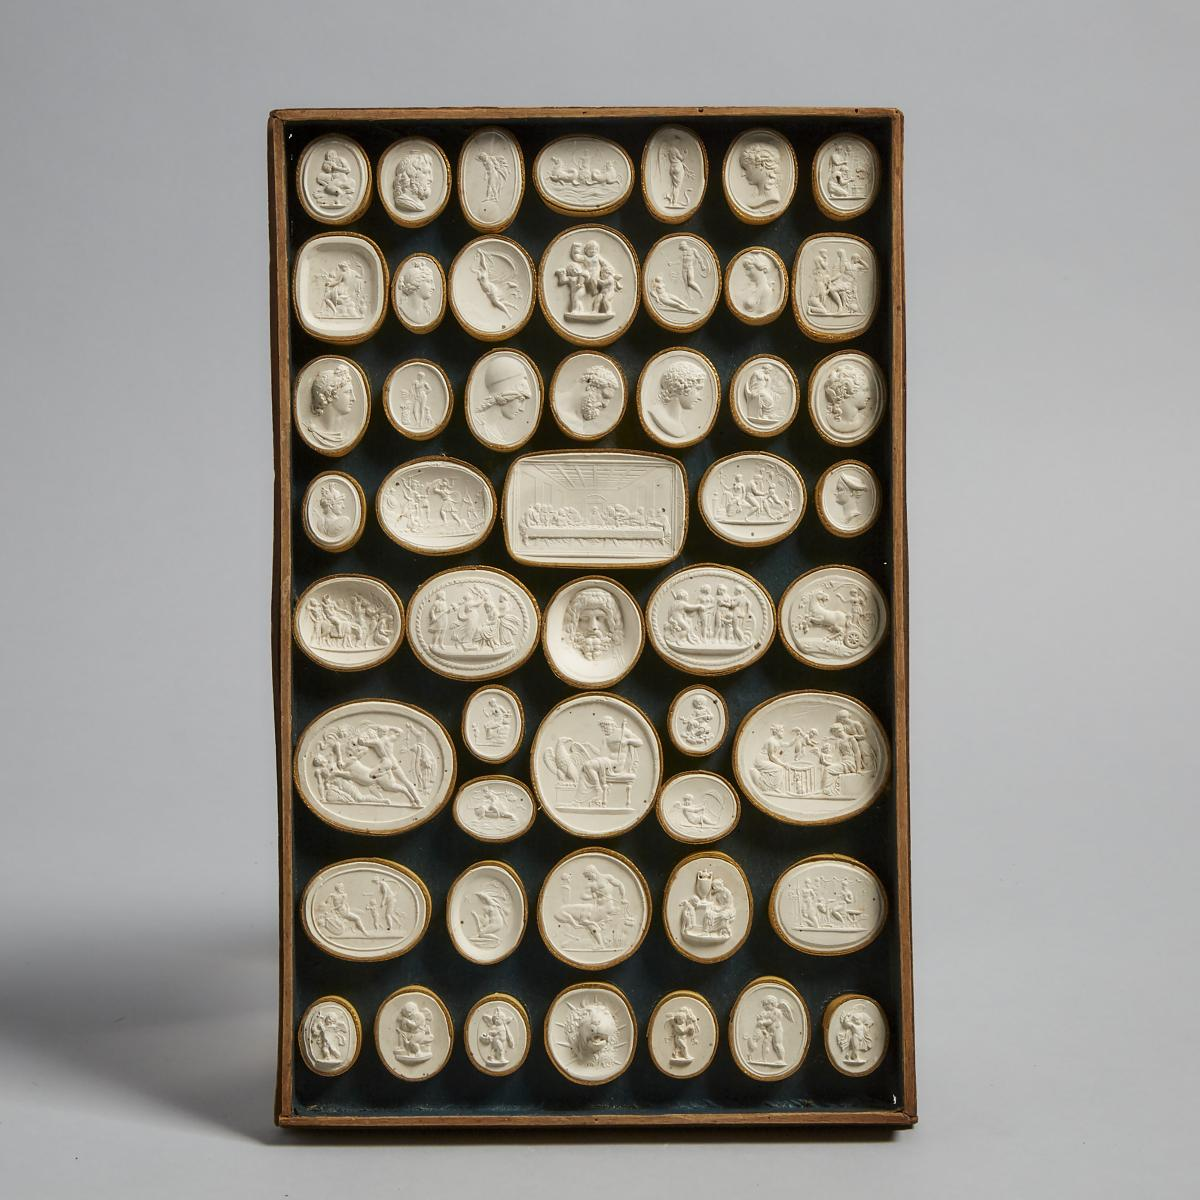 Cased Set of Italian Plaster Intaglio Medallions by Pietro Bracci, Rome, late 18th/early 19th centur - Image 5 of 7